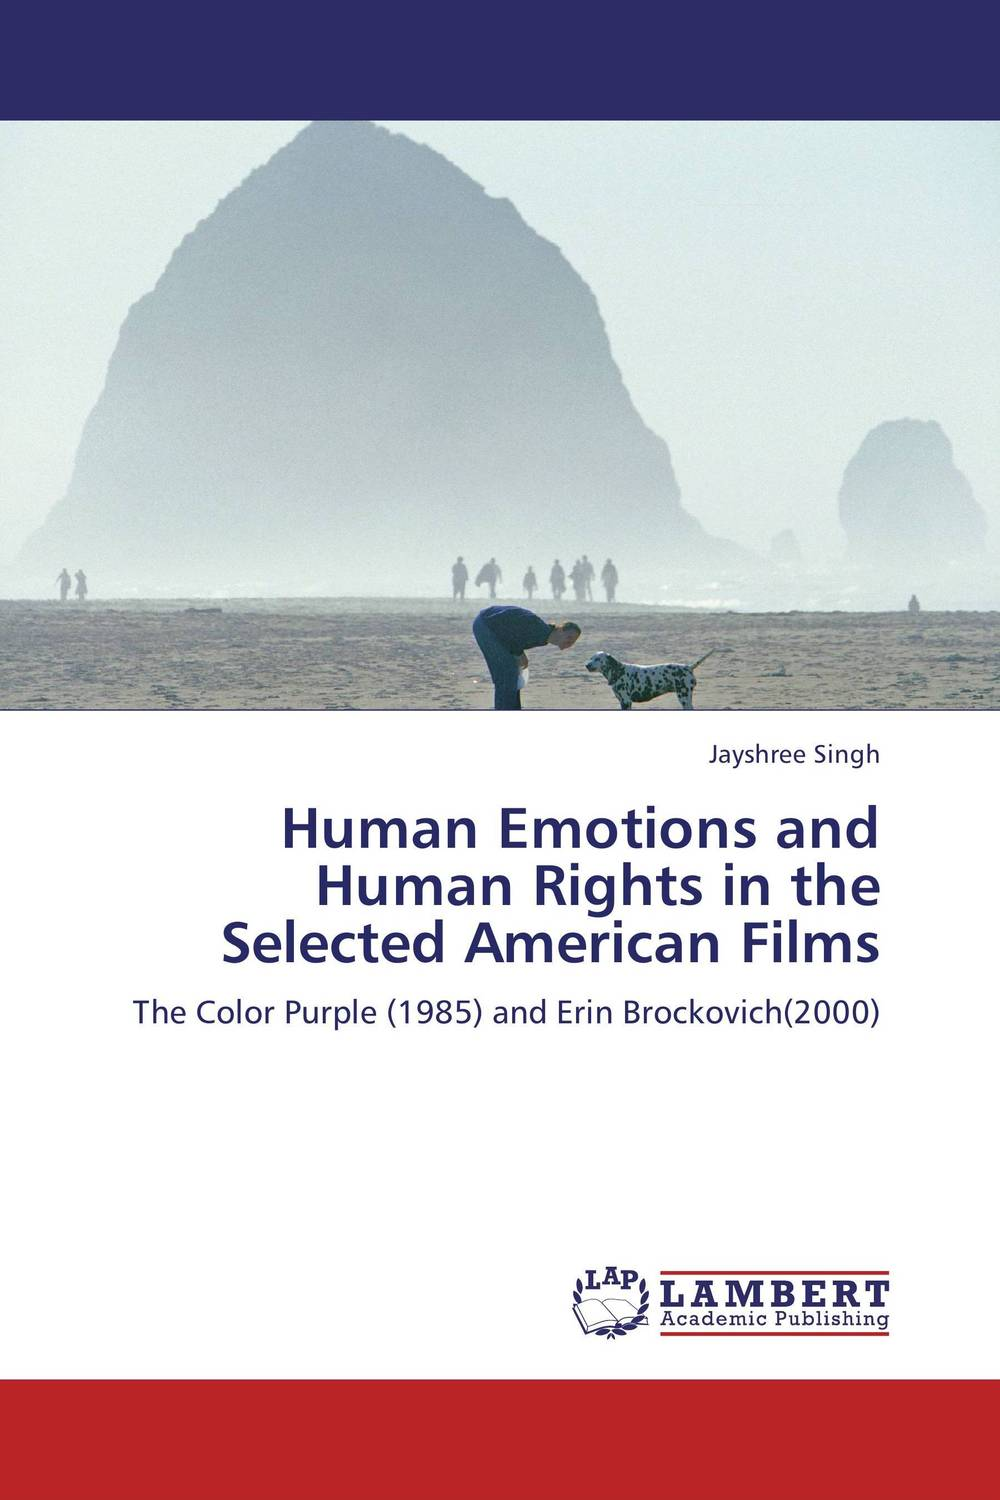 Human Emotions and Human Rights in the Selected American Films seeing things as they are